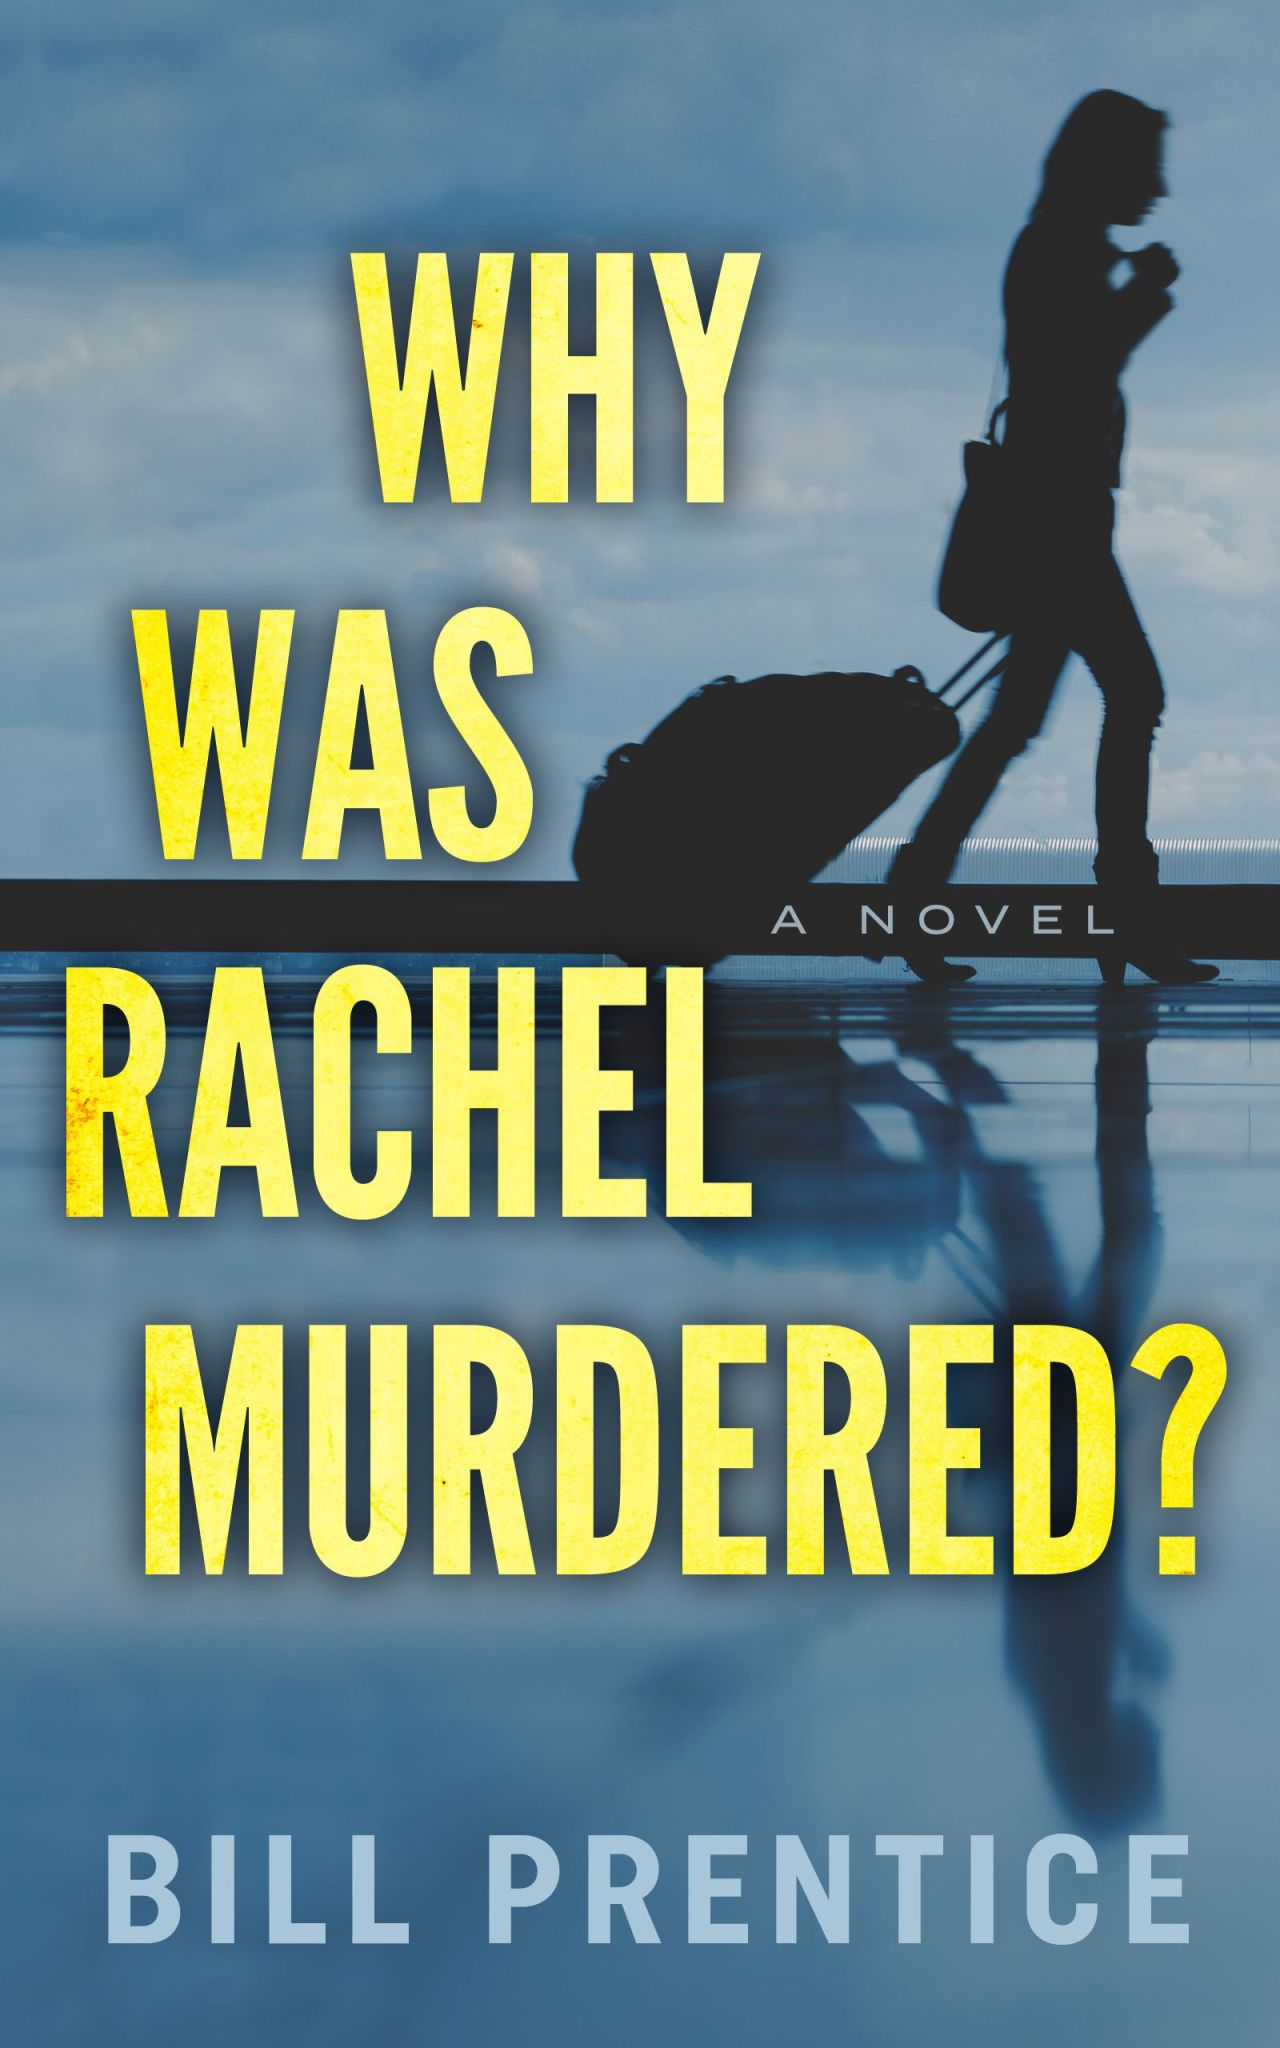 Bill Prentice: Why Was Rachel Murdered?